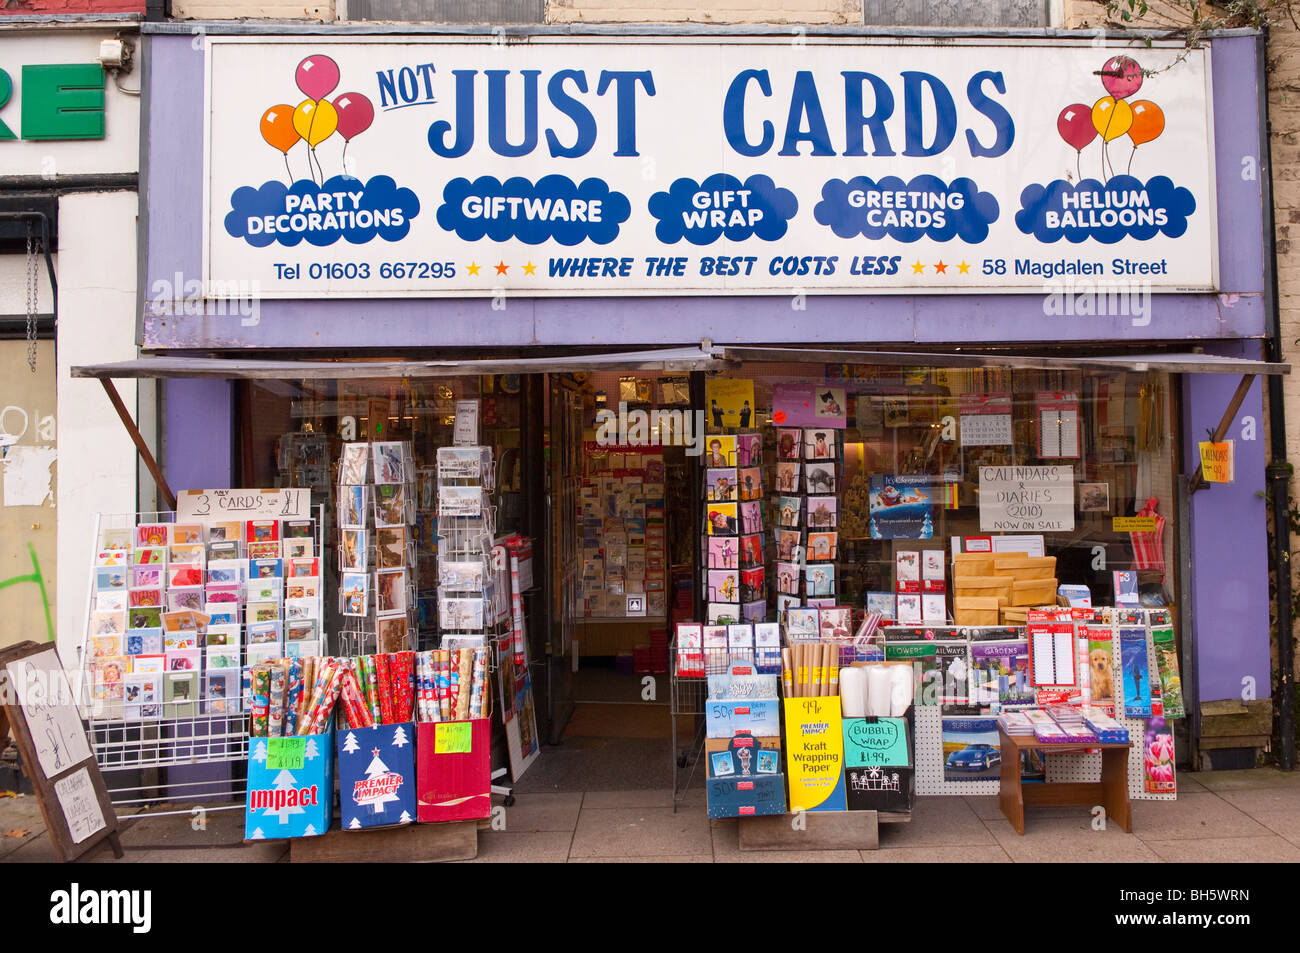 Gift Cards Store Stock Photos Gift Cards Store Stock Images Alamy